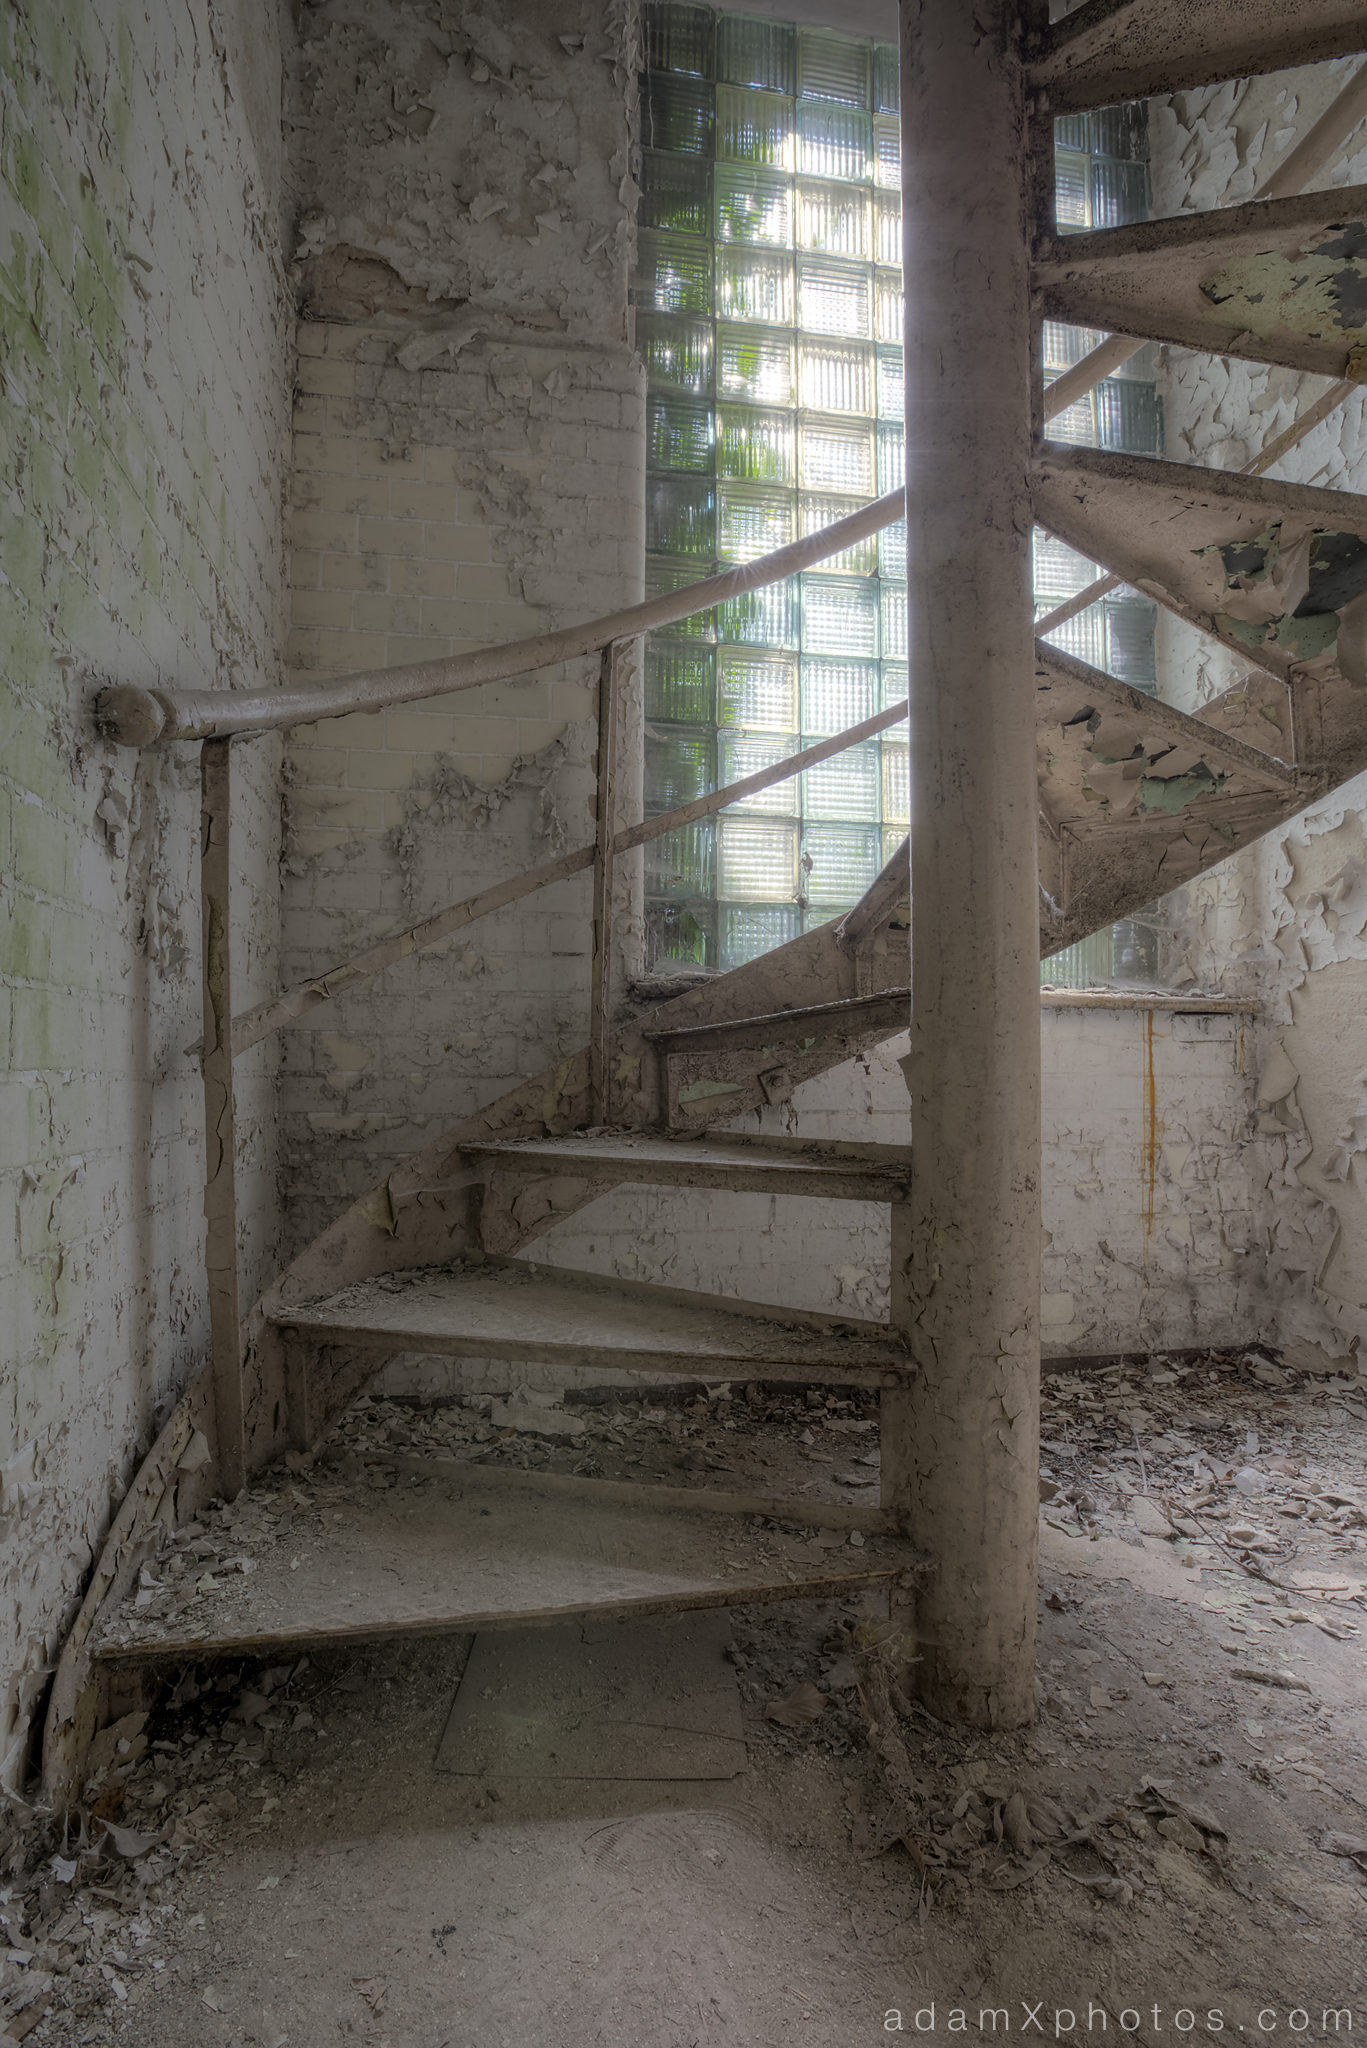 Adam X Urbex Beelitz Heilstatten Germany Urban Exploration Hospital Decay Lost Abandoned Hidden Butcher Bakery laundry spiral stairs staircase